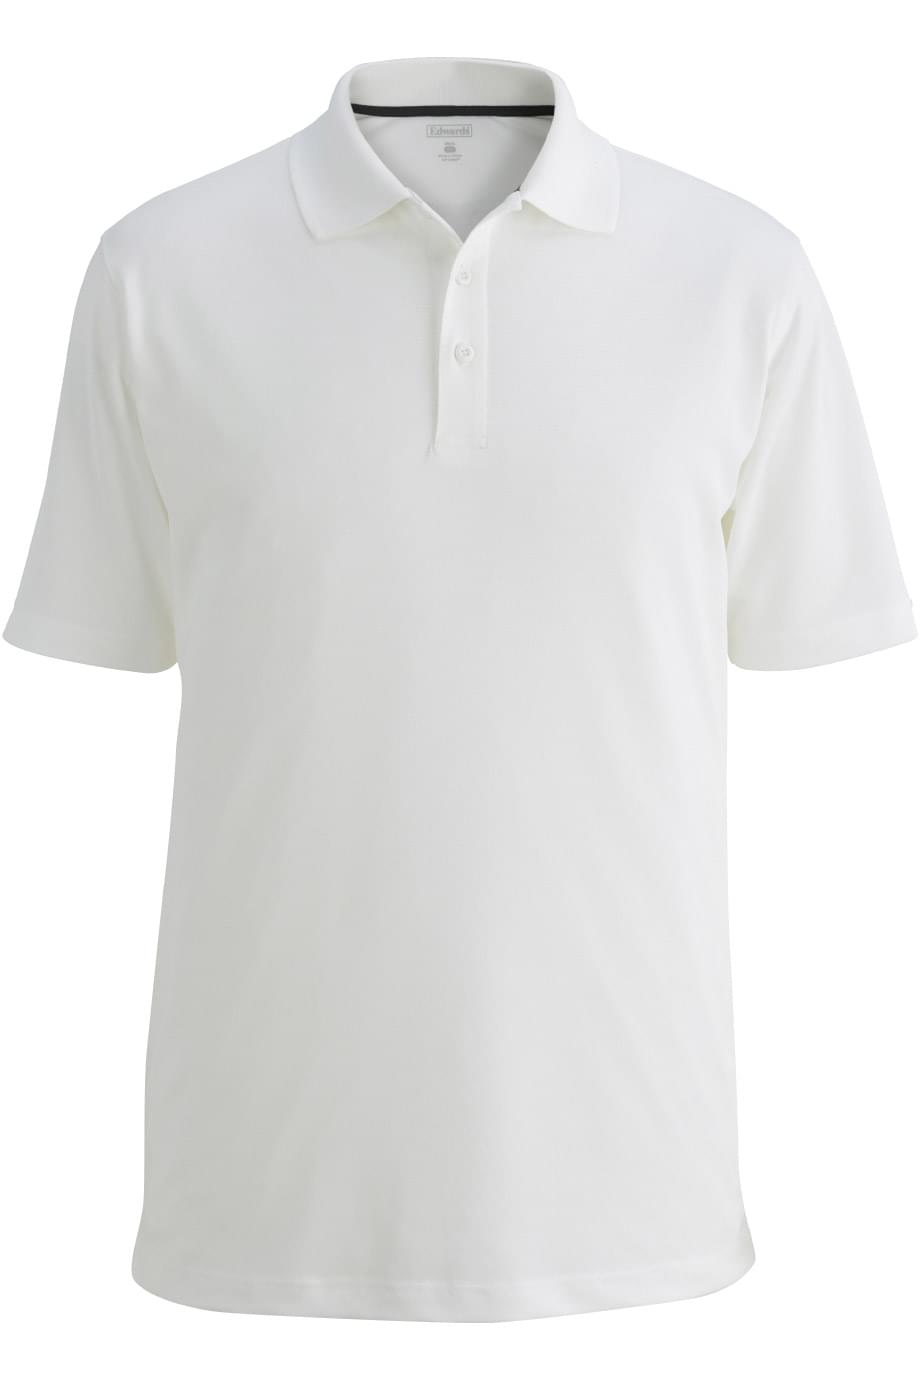 AIRGRID SNAG PROOF MESH POLO